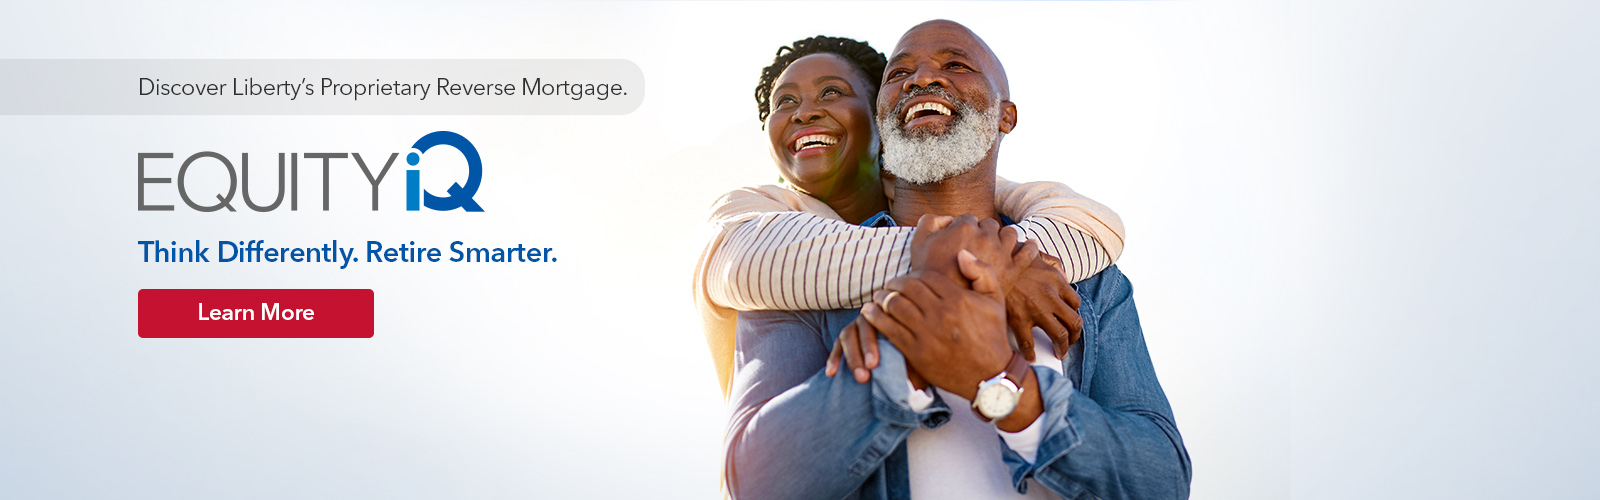 Discover Liberty's Proprietary Reverse Mortgage. Equity IQ. Think Differently. Retire Smarter. Click to Learn More.